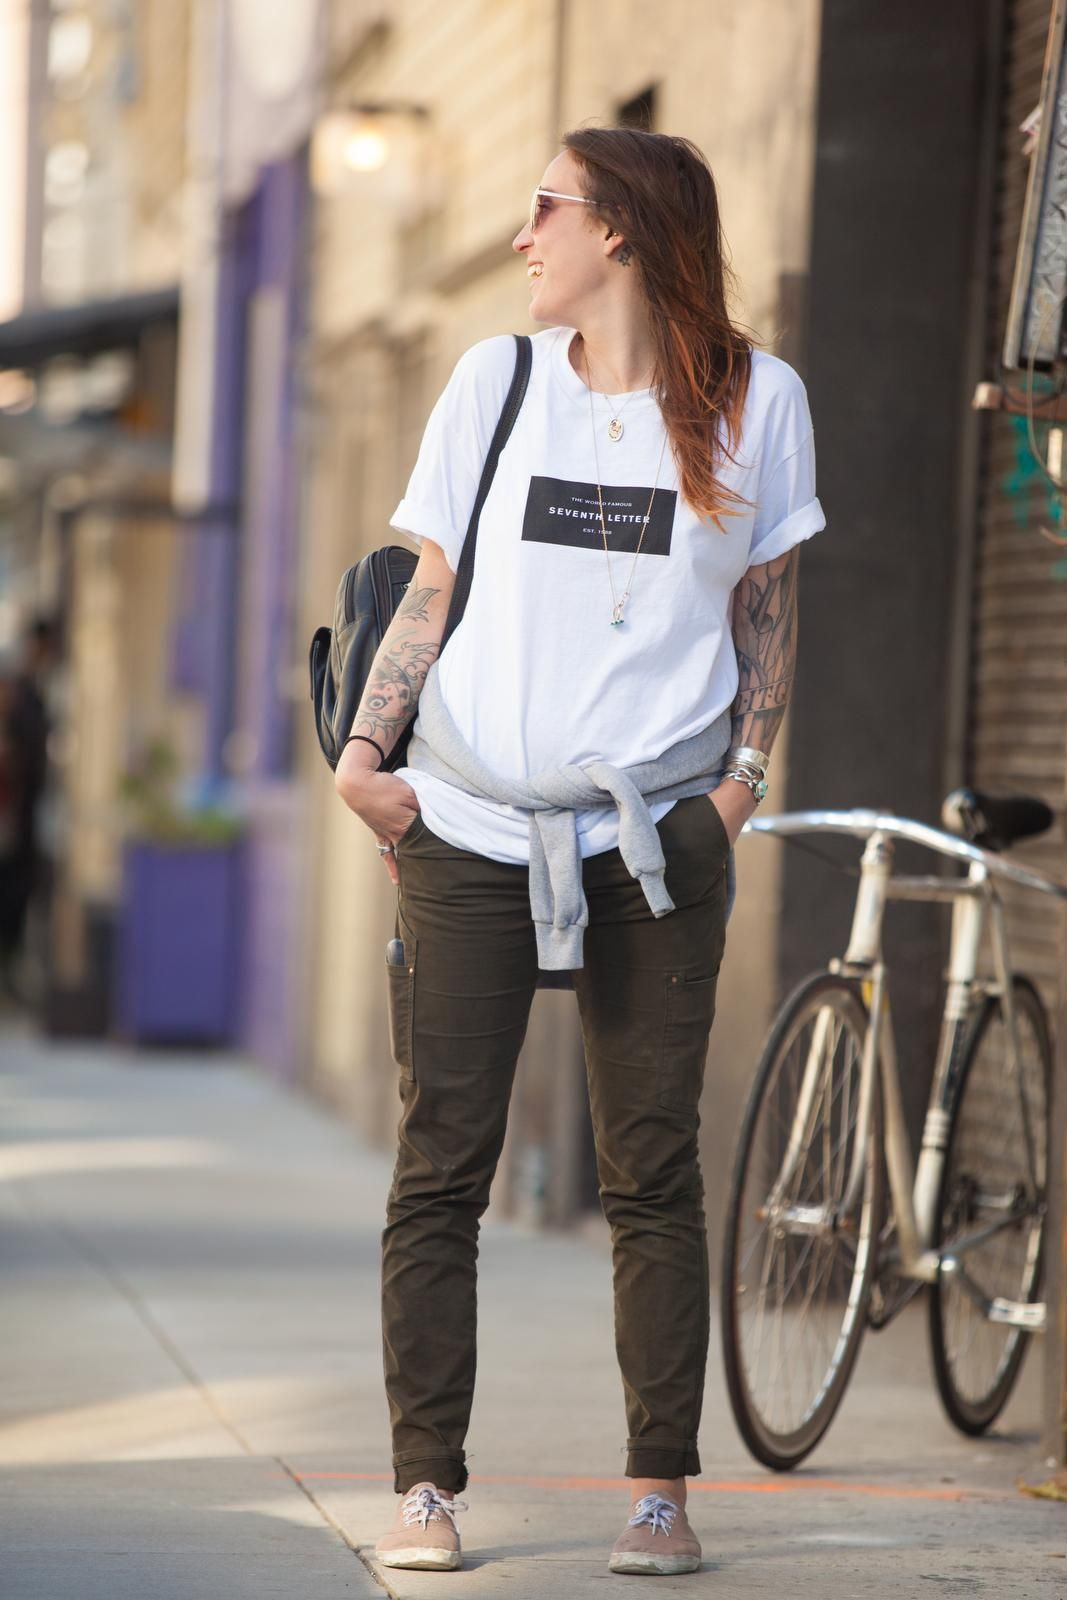 24 Street Style Outfits To Try This July 24 Street Style Outfits To Try This July new foto